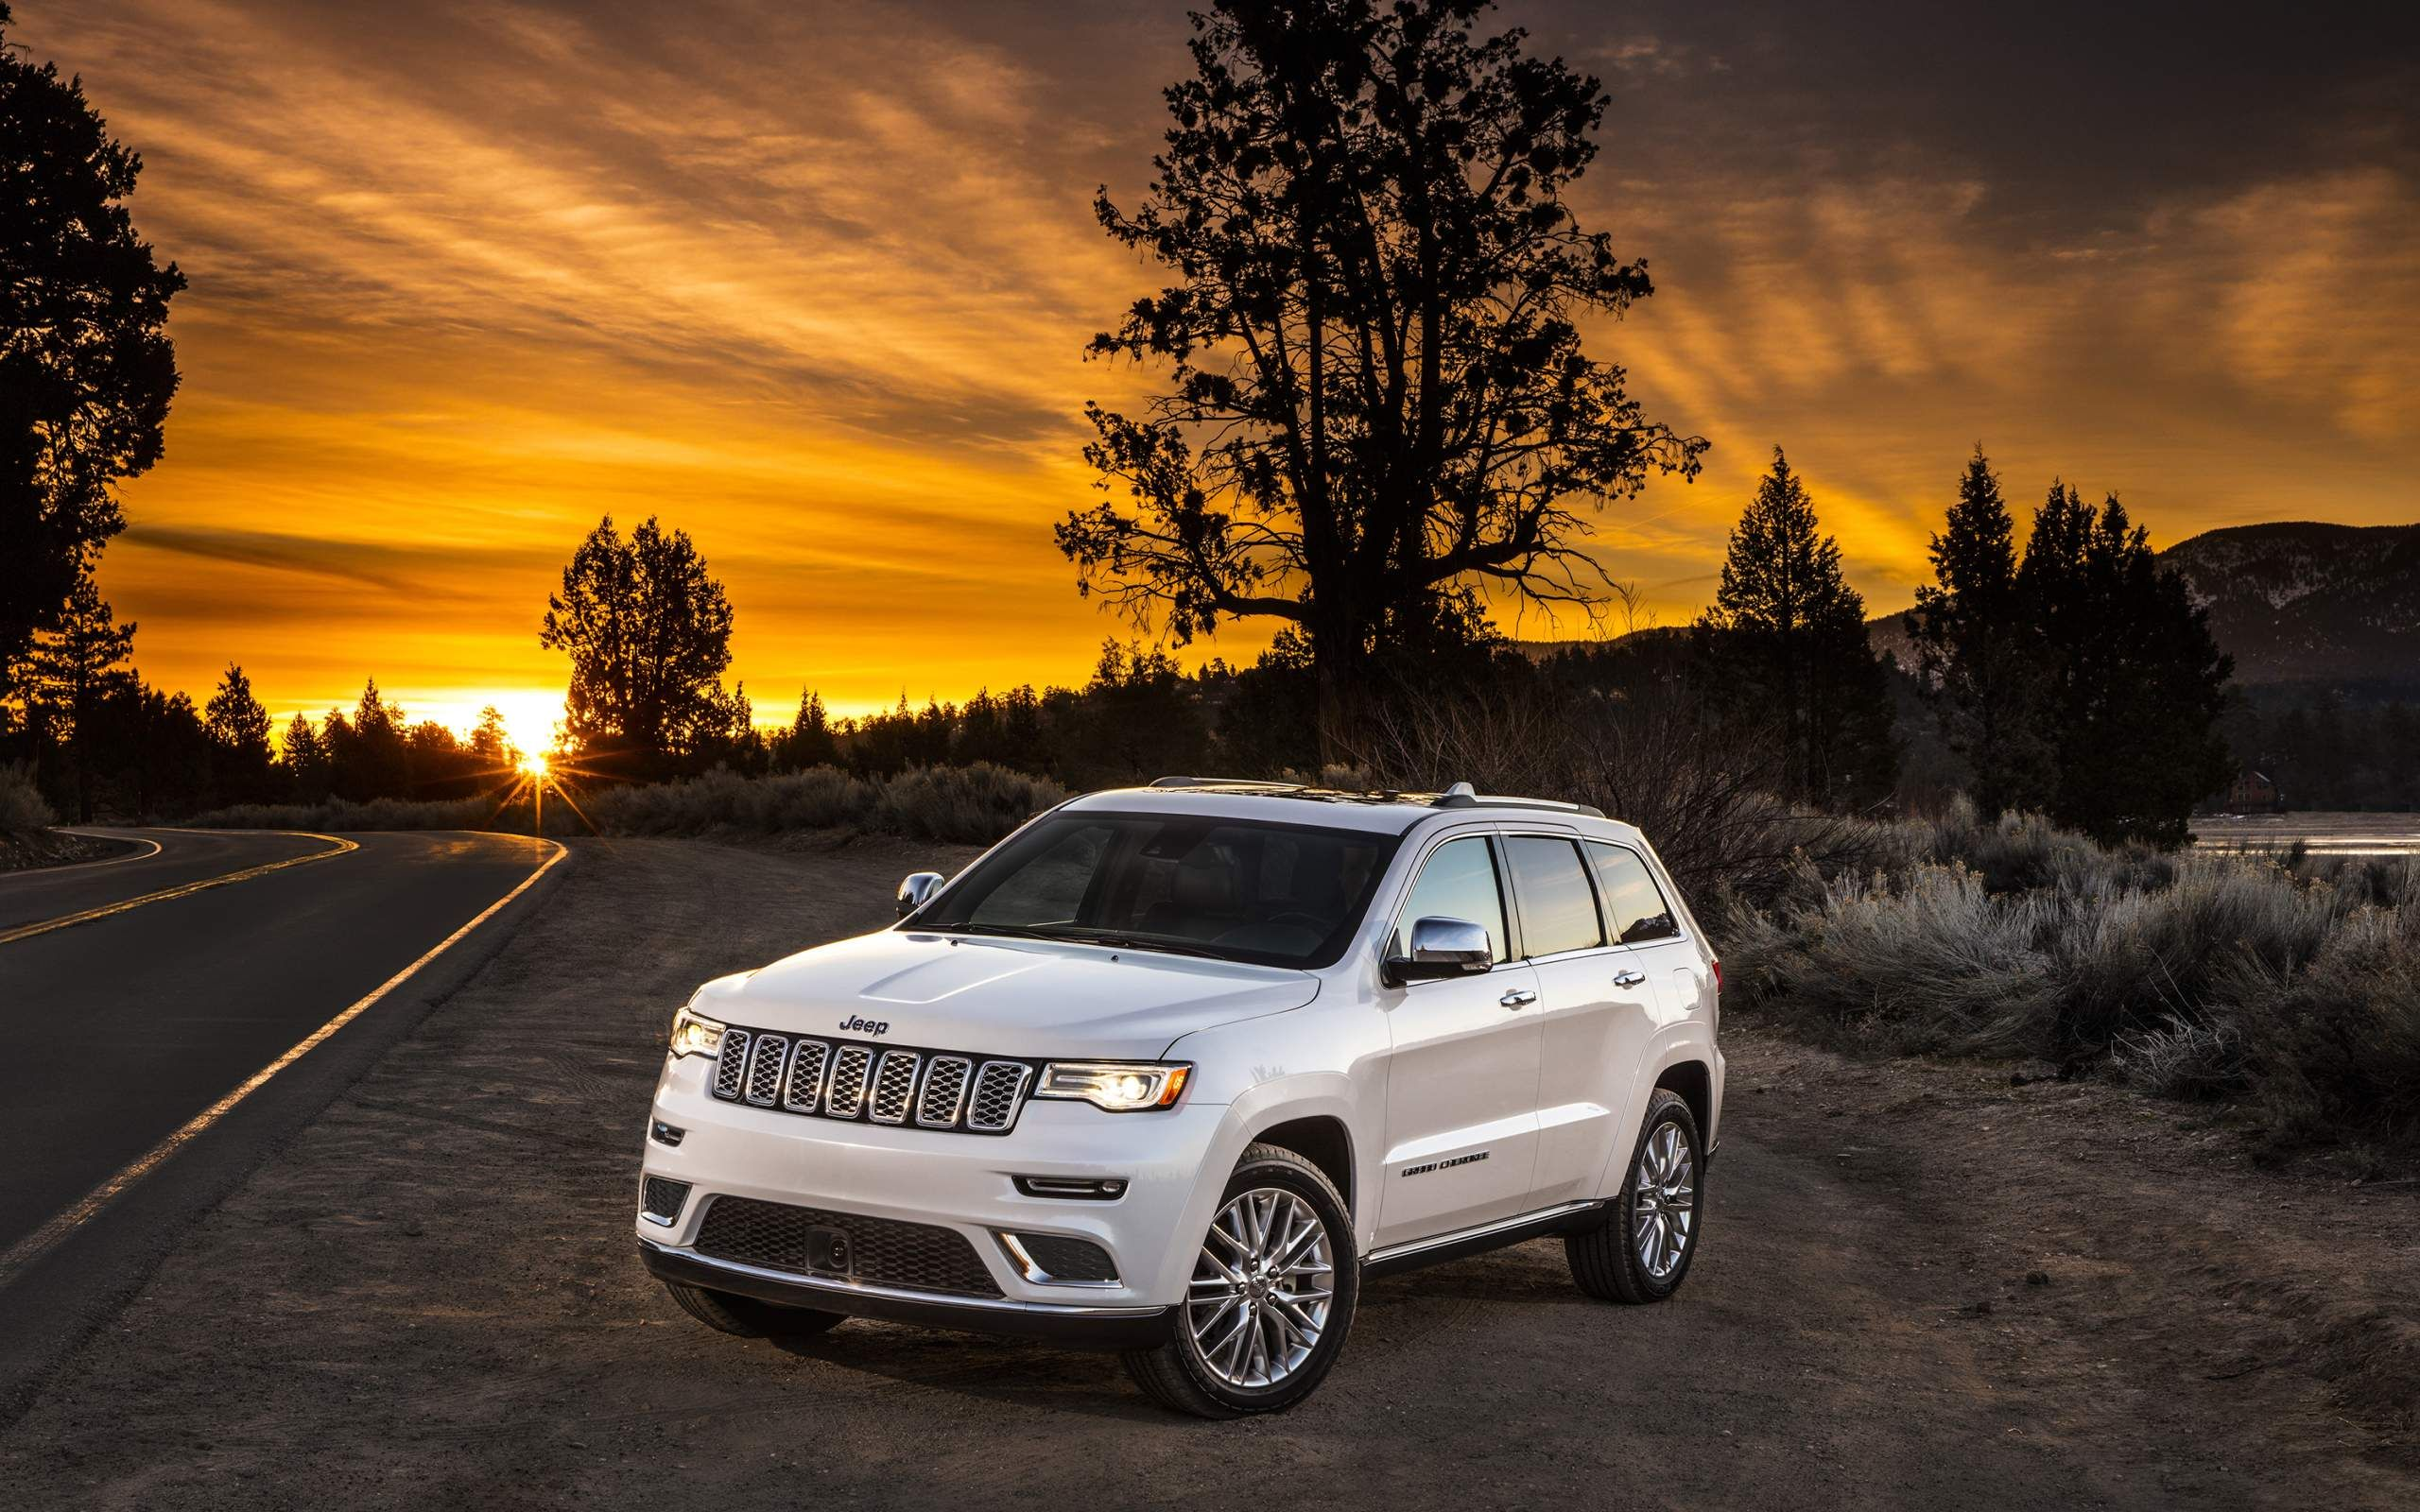 grand cherokee jeep wallpaper hd download for desktop | fondos de